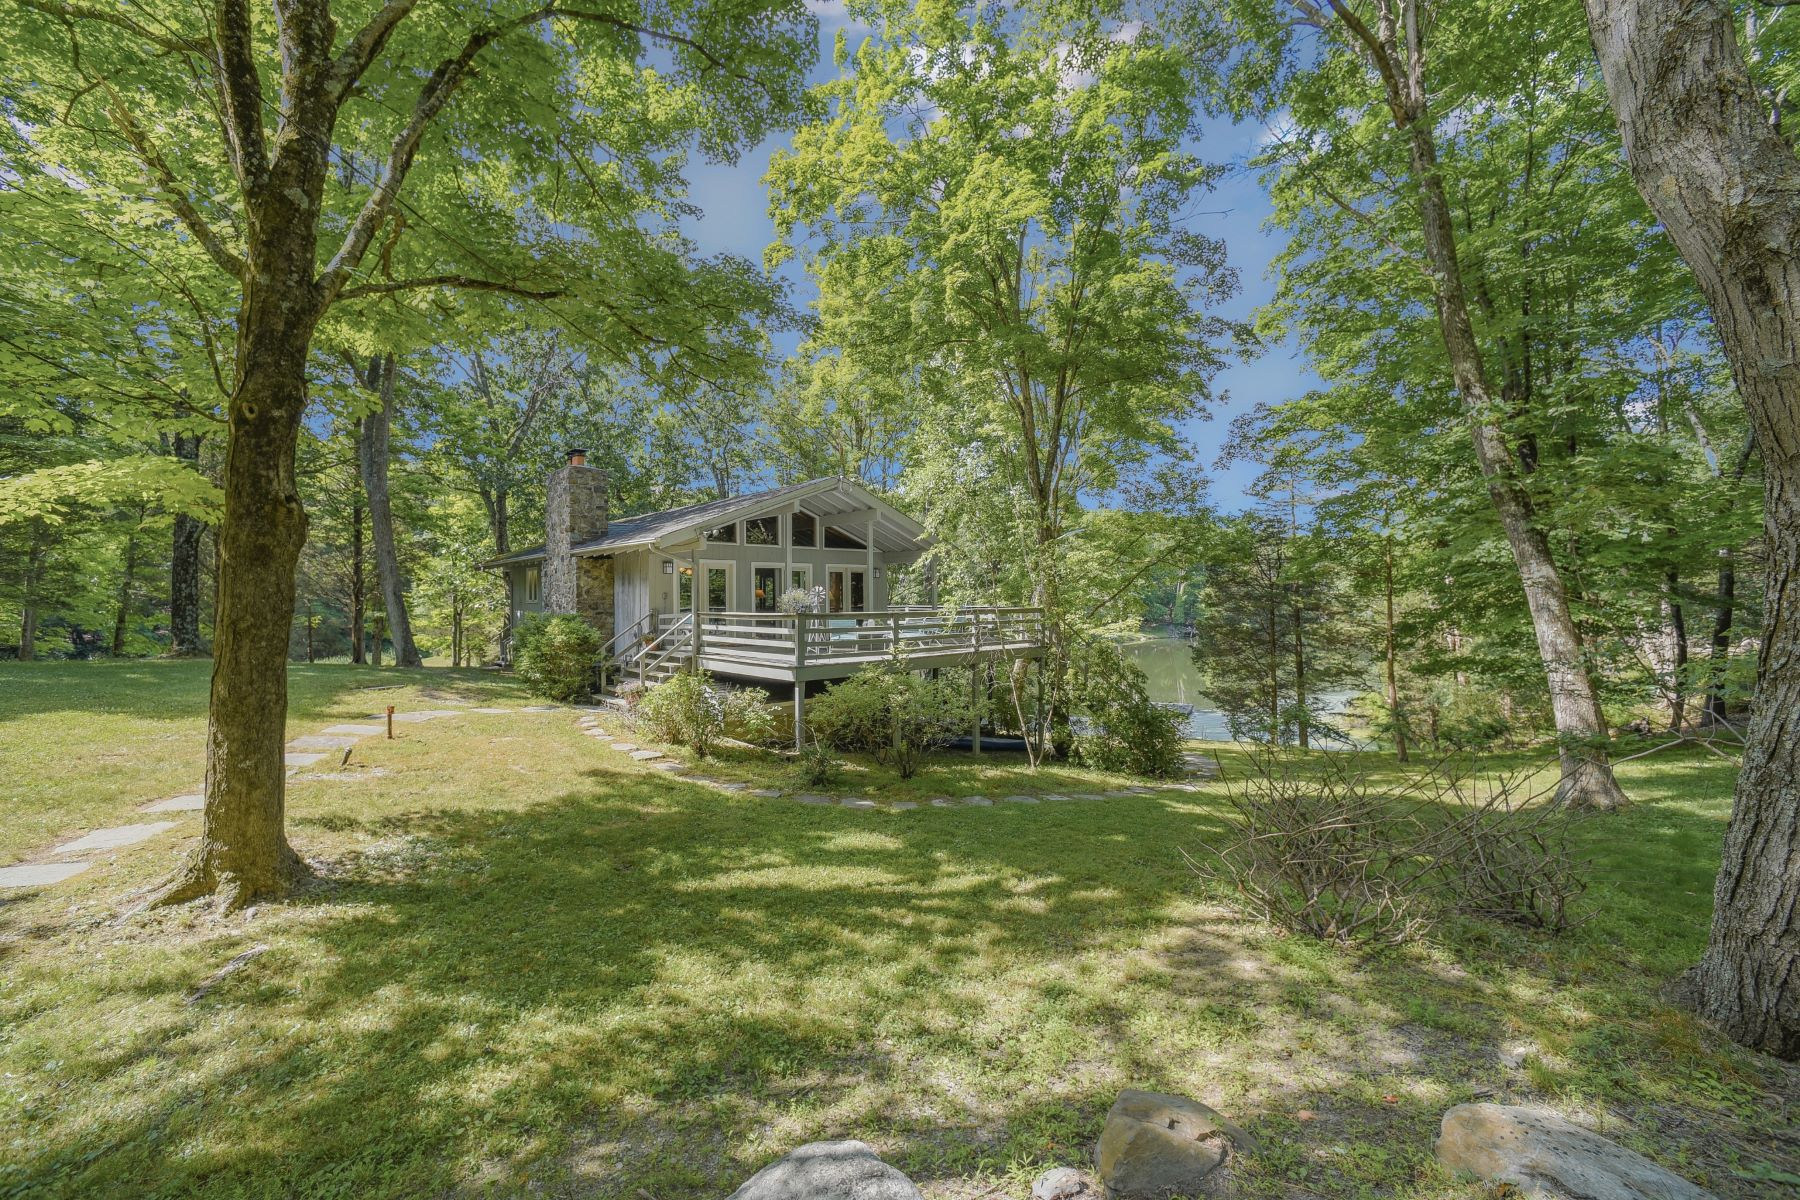 Farm and Ranch Properties for Sale at Family Farm Compound - Three Separate Homes with Private Lake on 142 Acres! 17-A Silver Lake Road, Frelinghuysen Township, New Jersey 07825 United States